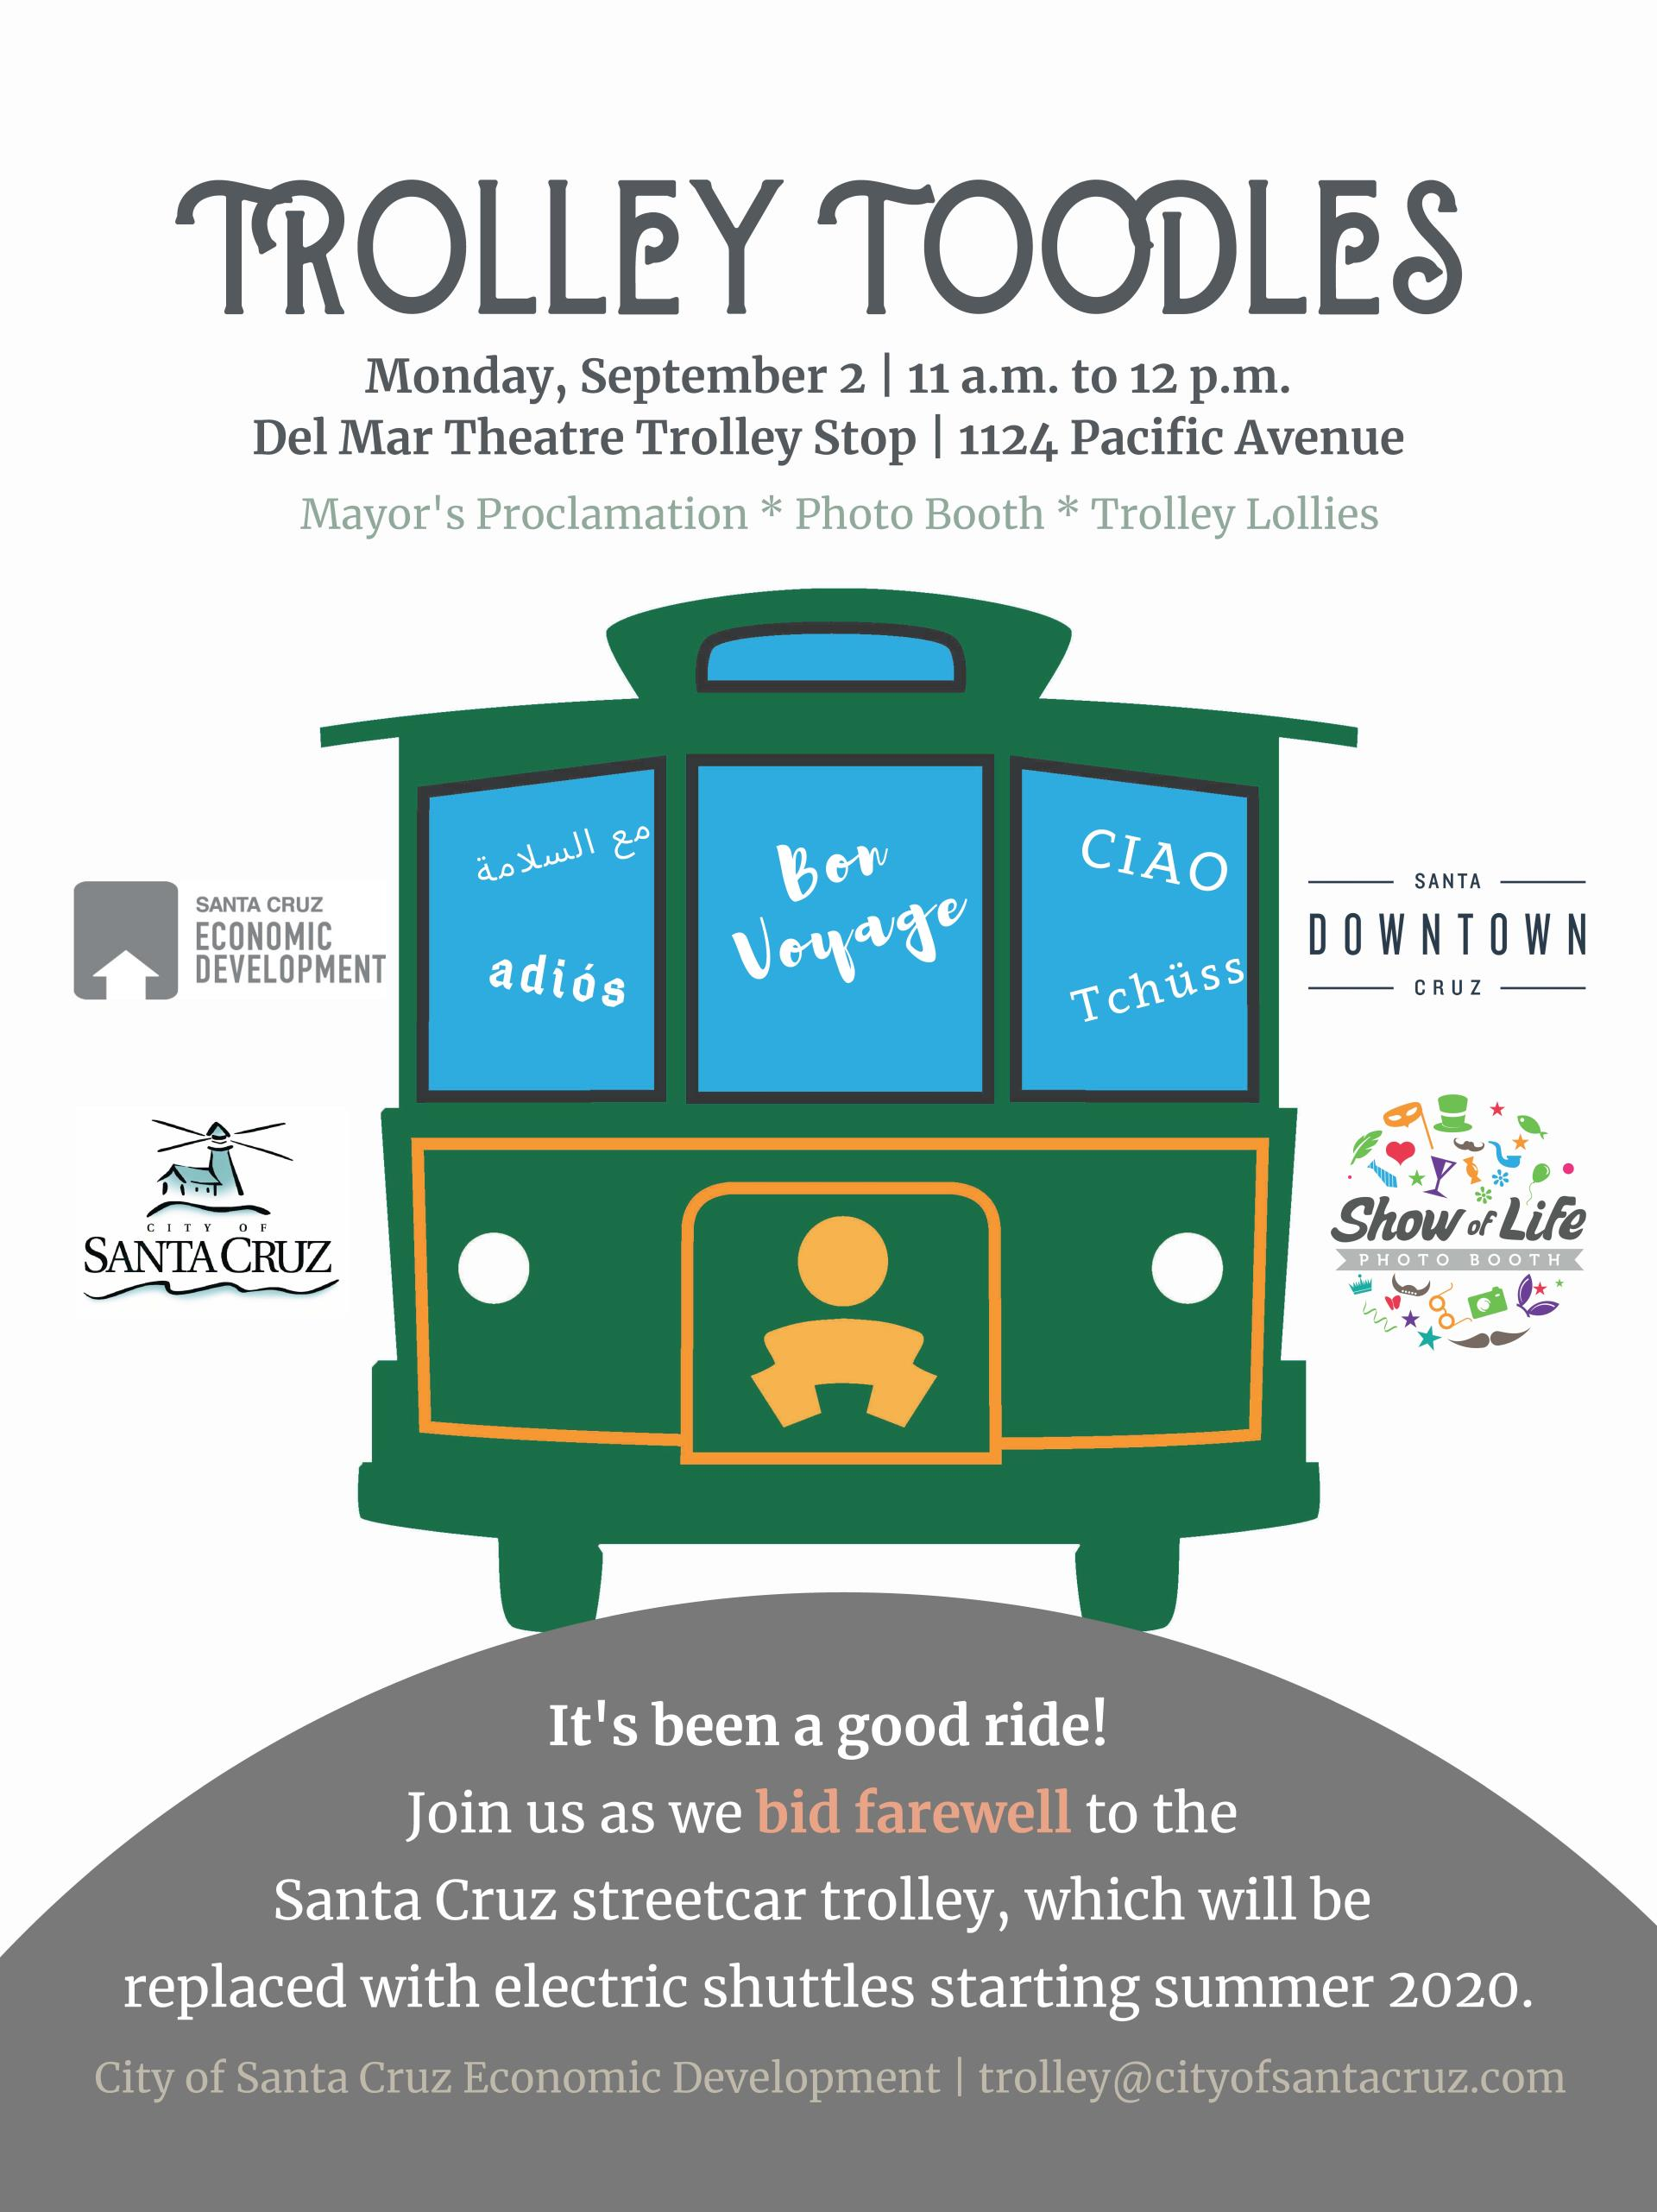 TROLLEY TOODLES POSTER